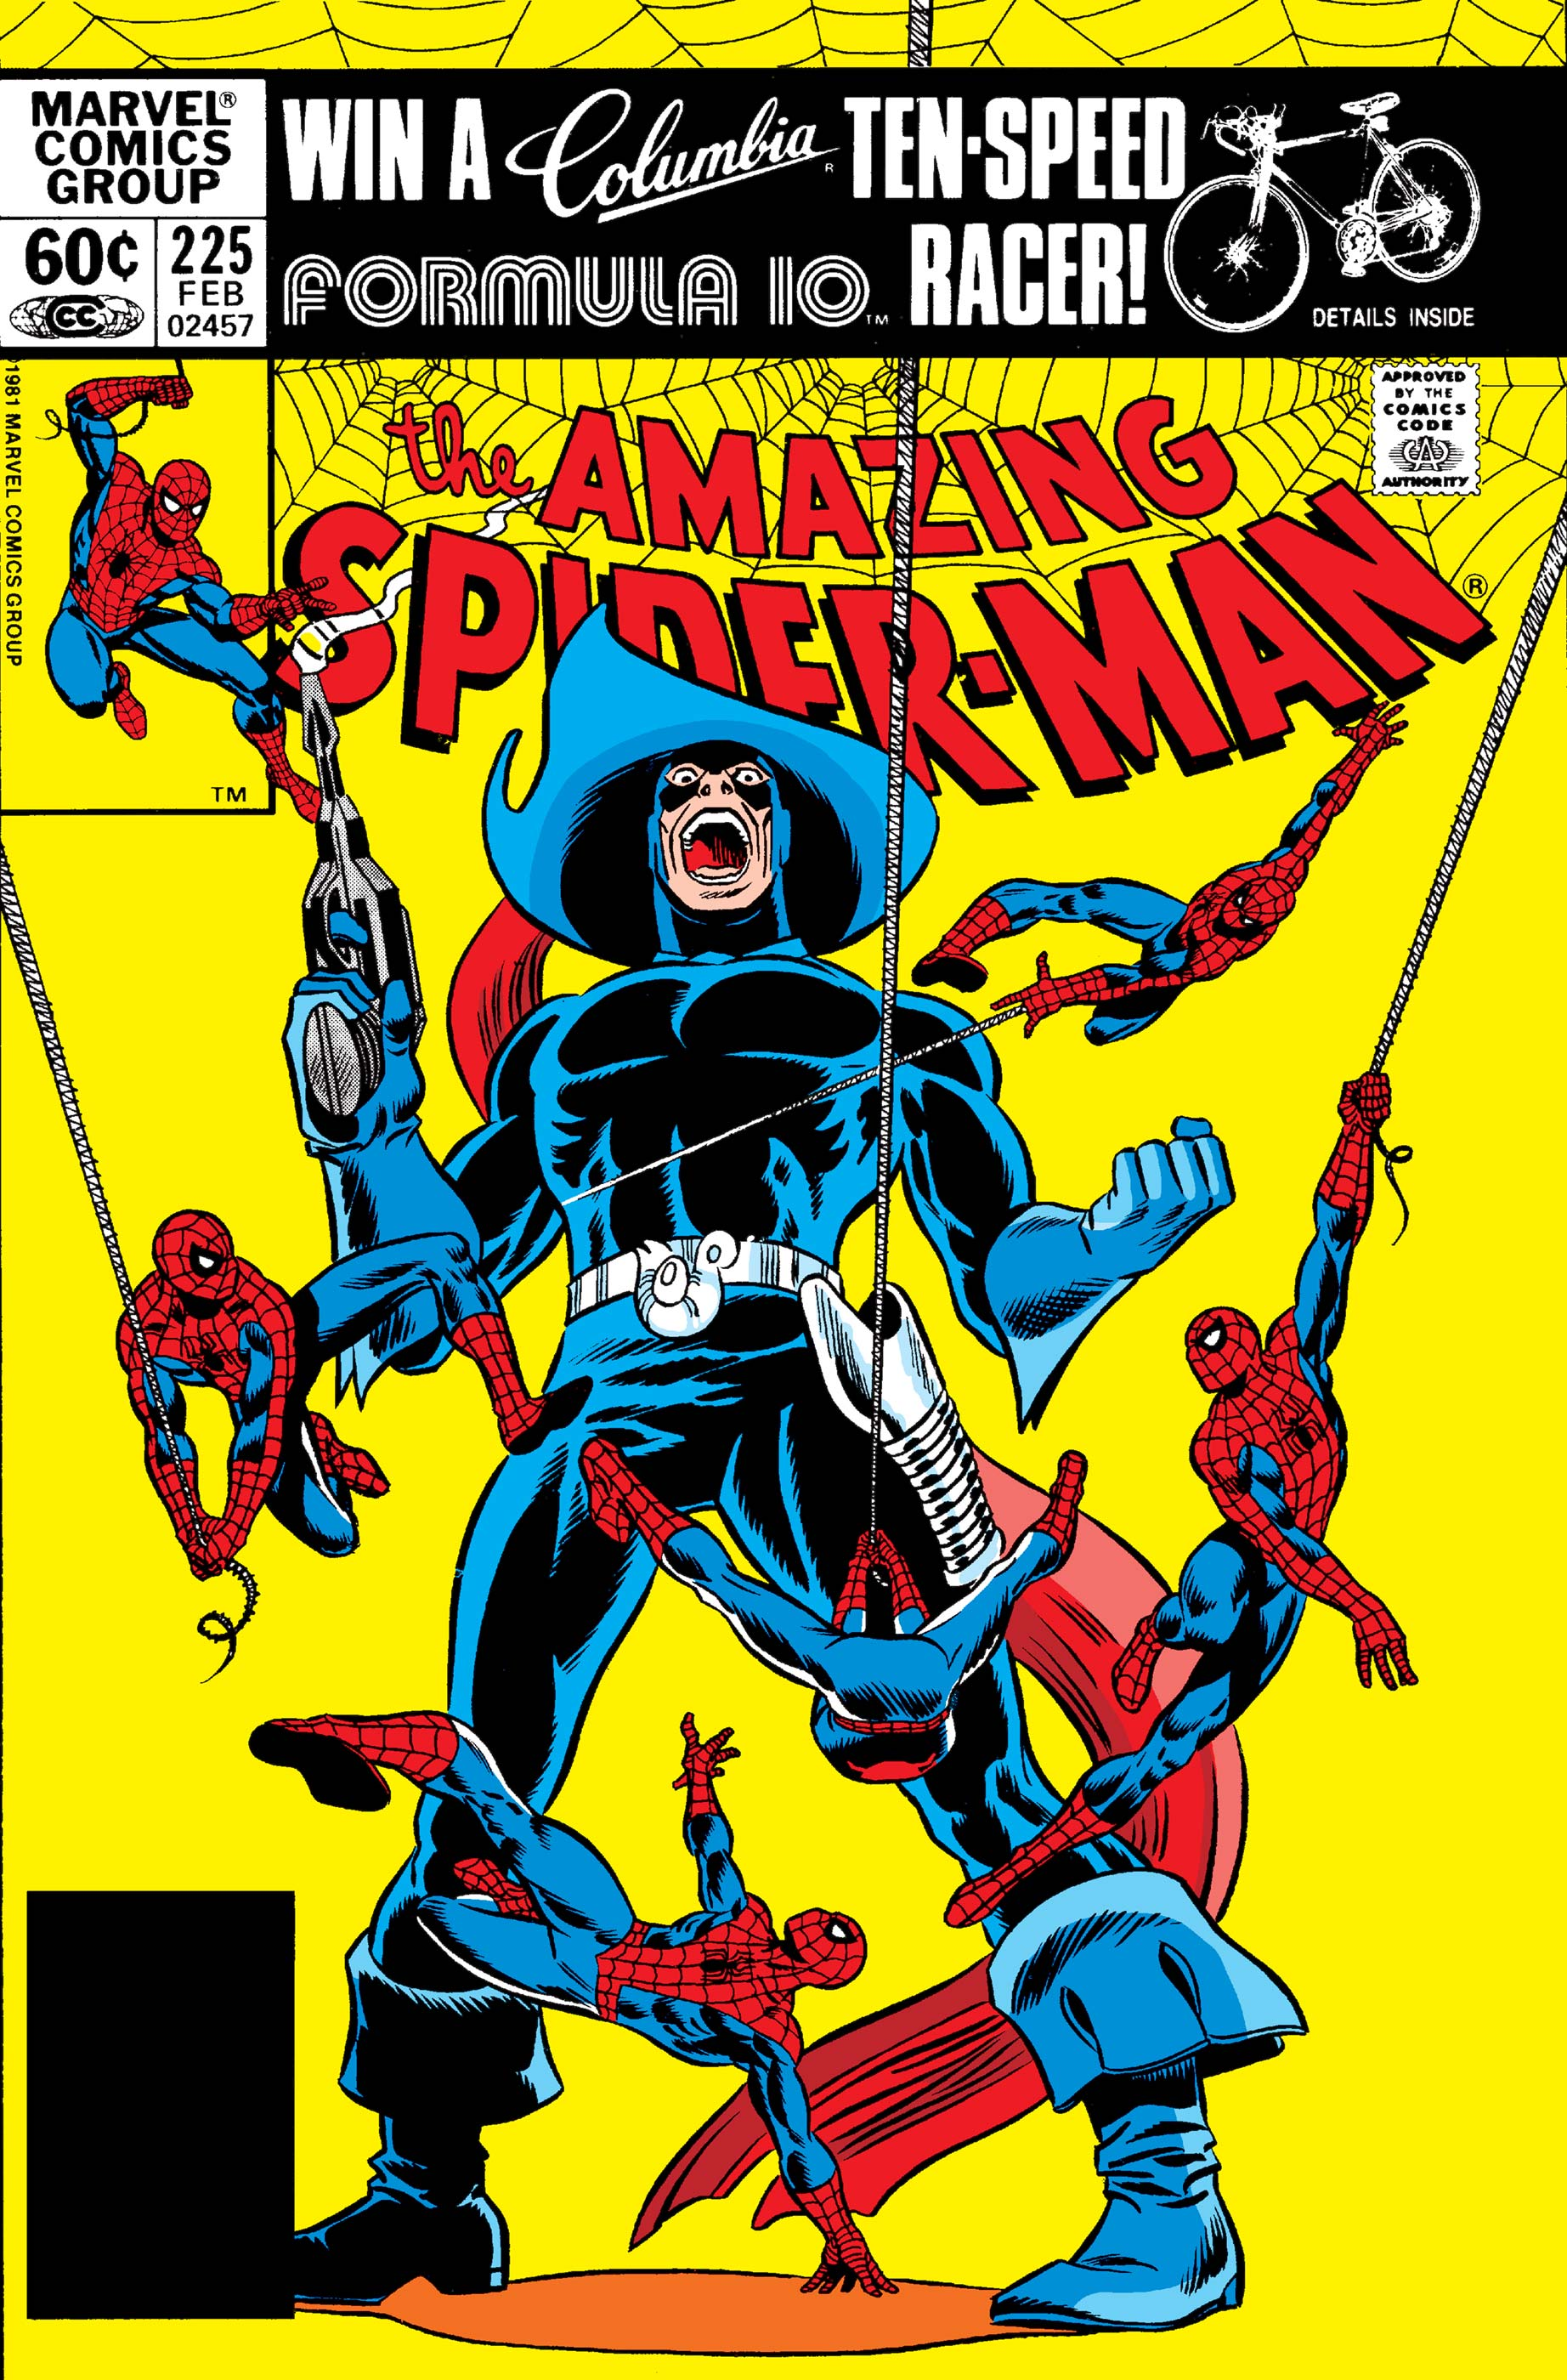 The Amazing Spider-Man (1963) #225